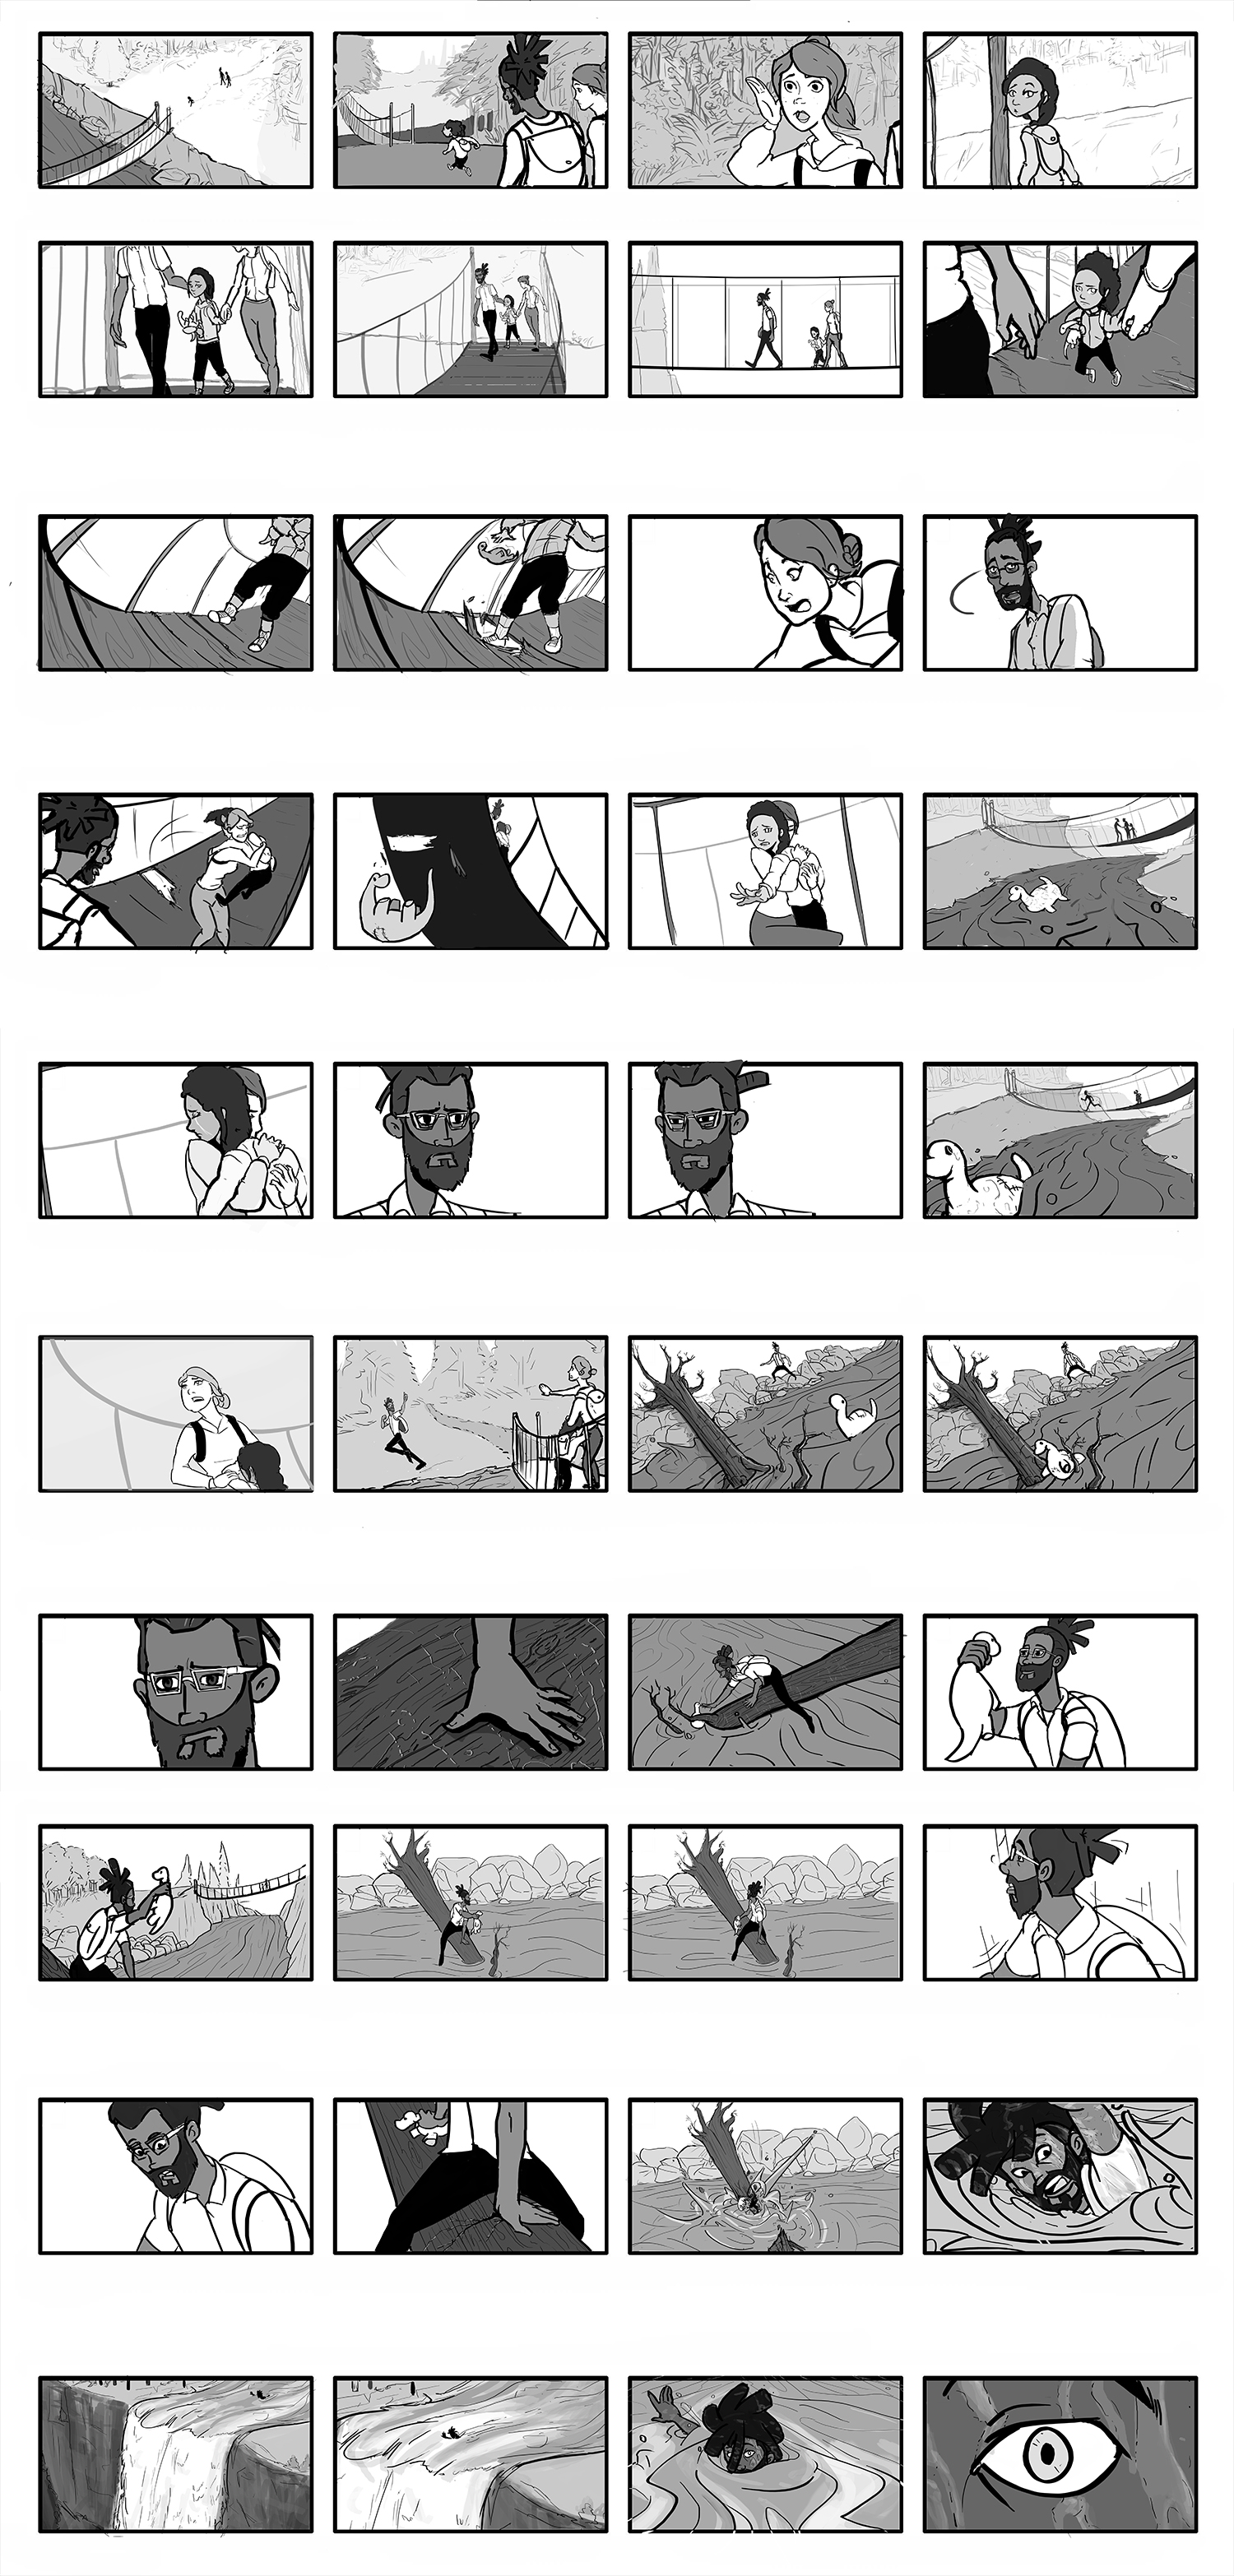 DanielF_RoughStoryBoard_1.jpg